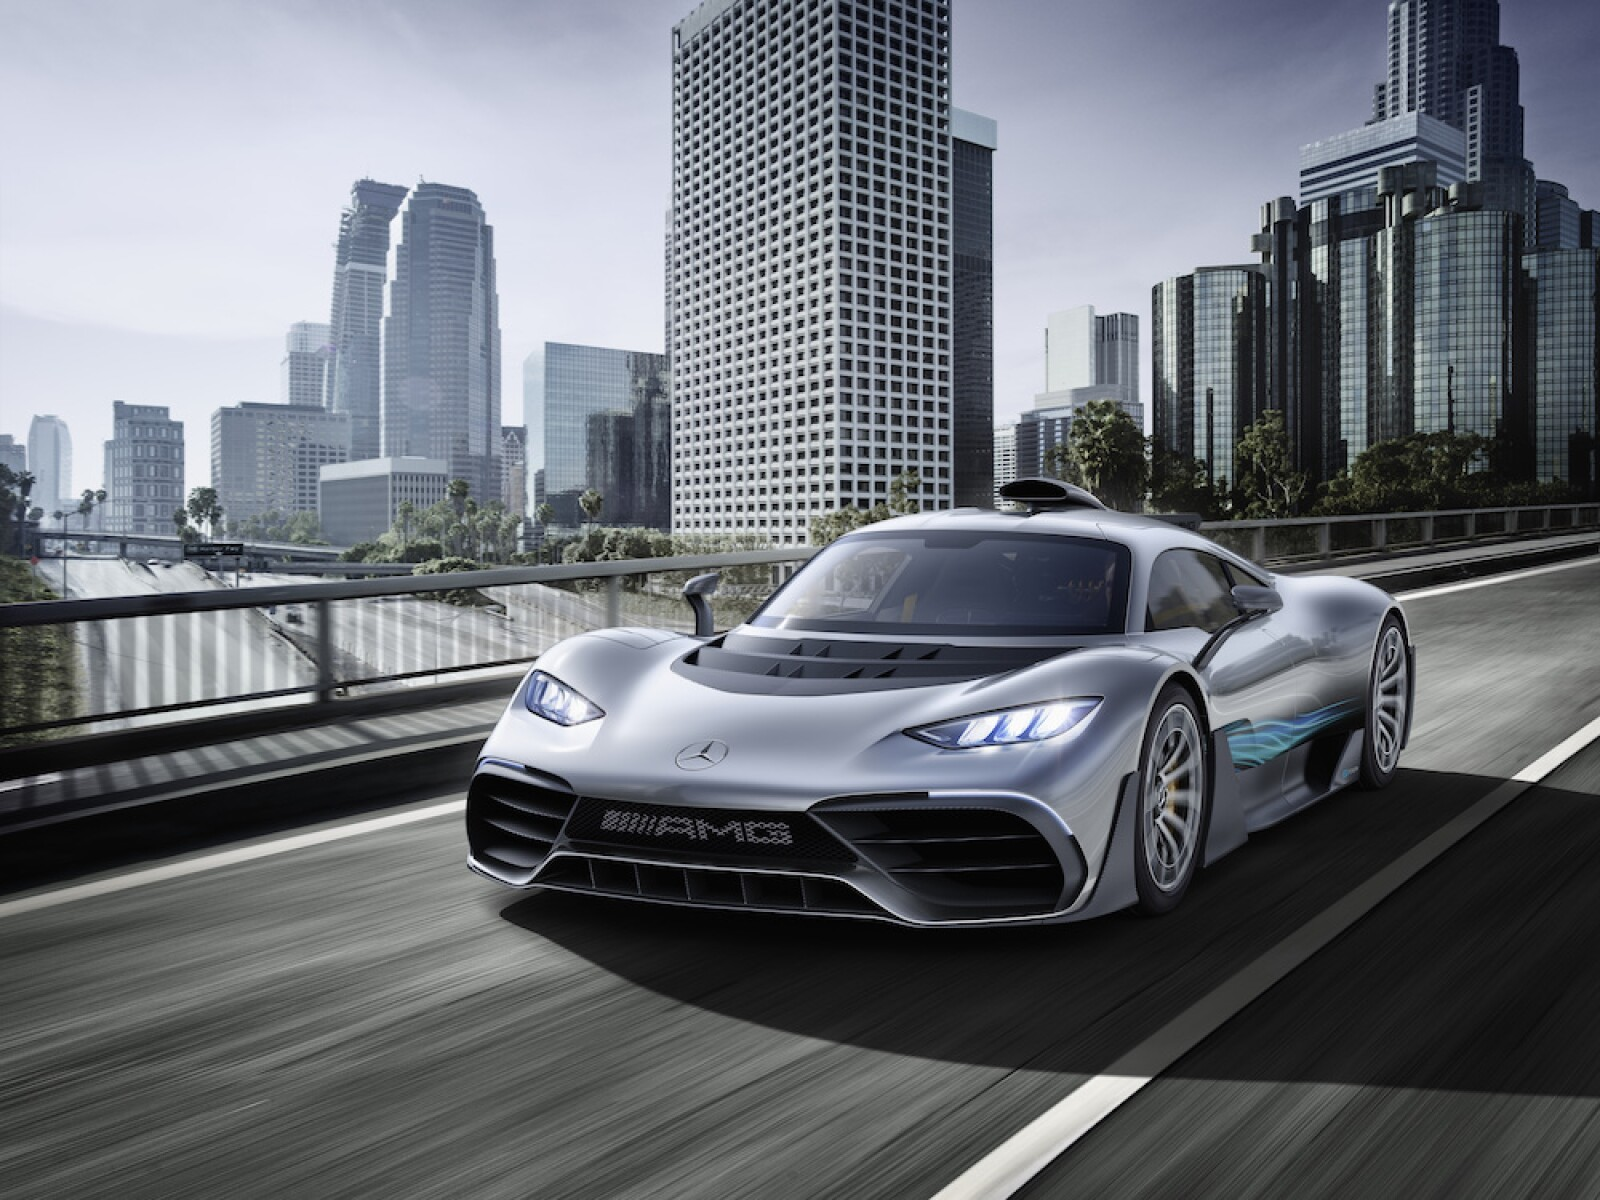 Weltpremiere Showcar Mercedes-AMG Project ONE: Mercedes-AMG bringt Formel 1-Technologie für die Straße